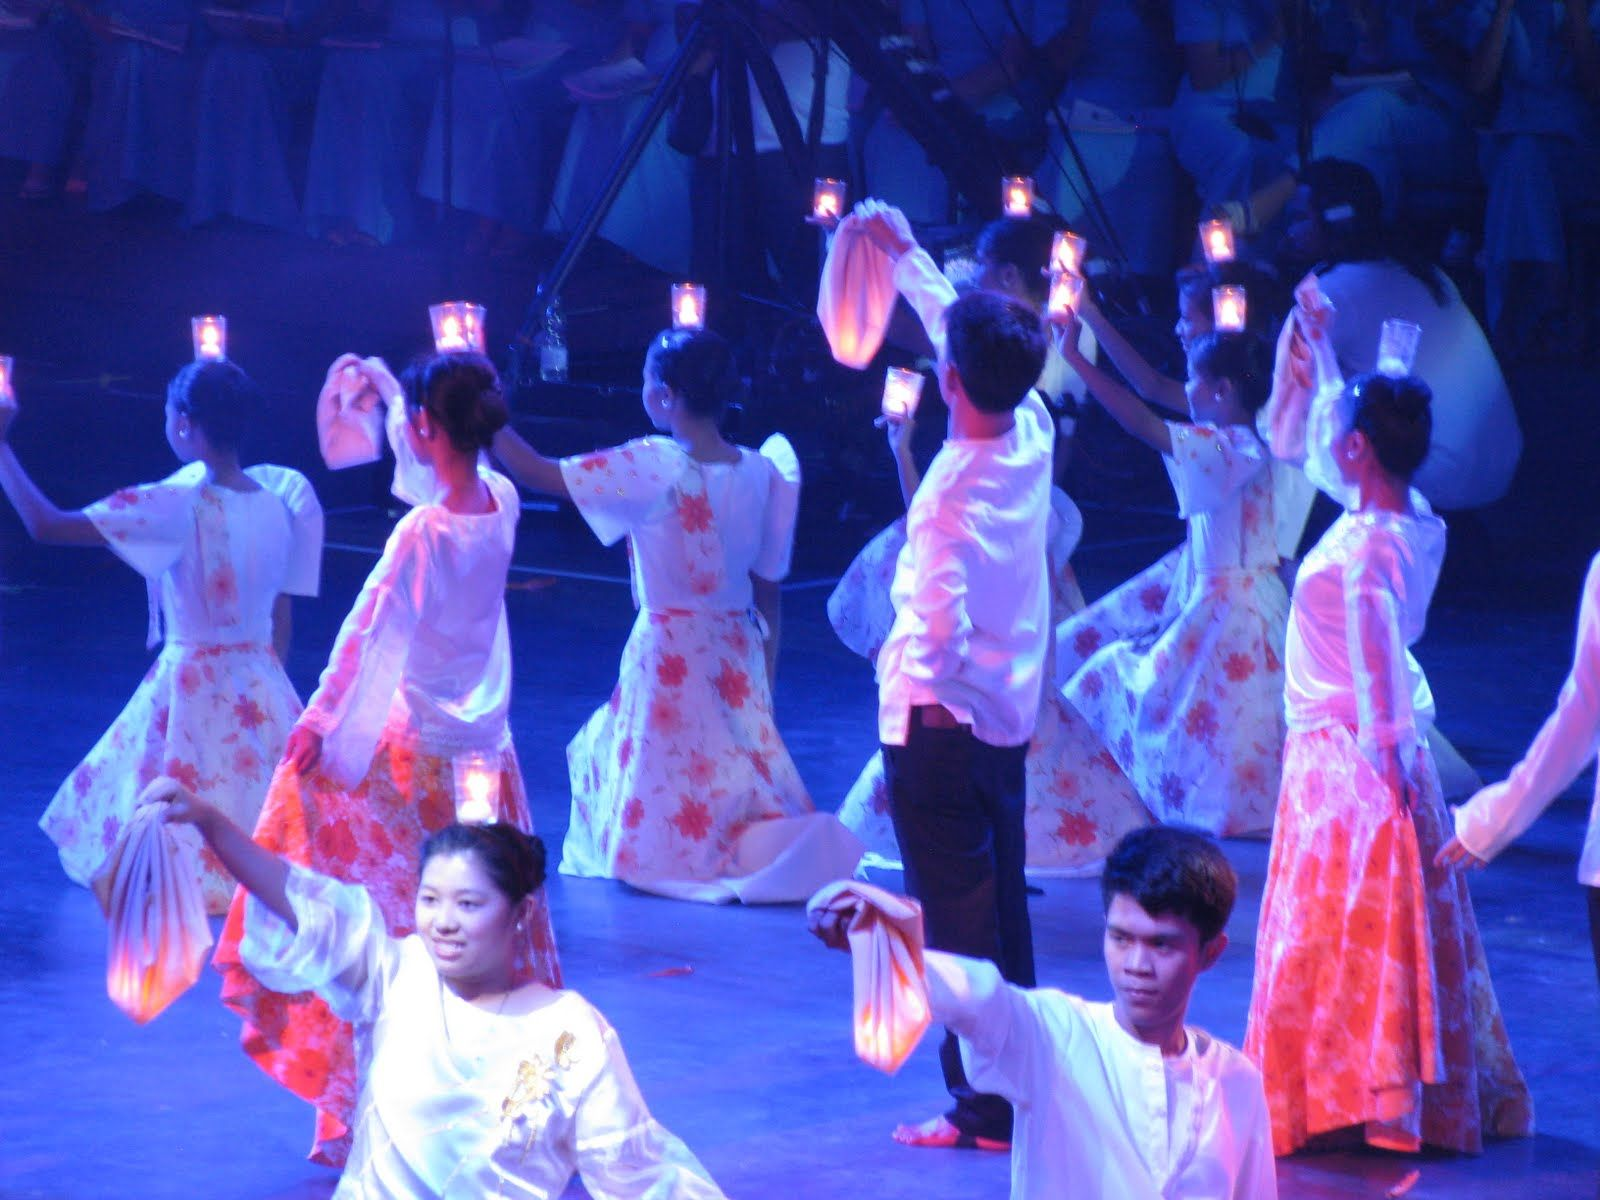 pandanggo sa ilaw Sa nayon laughter and gaiety the term pandanggo comes from the spanish word fandango the waltz-style music is similar to that of pandanggo sa ilaw kalapati origin: iilocos dancers gayfully imitate the dove as they bill and coo pasigin.